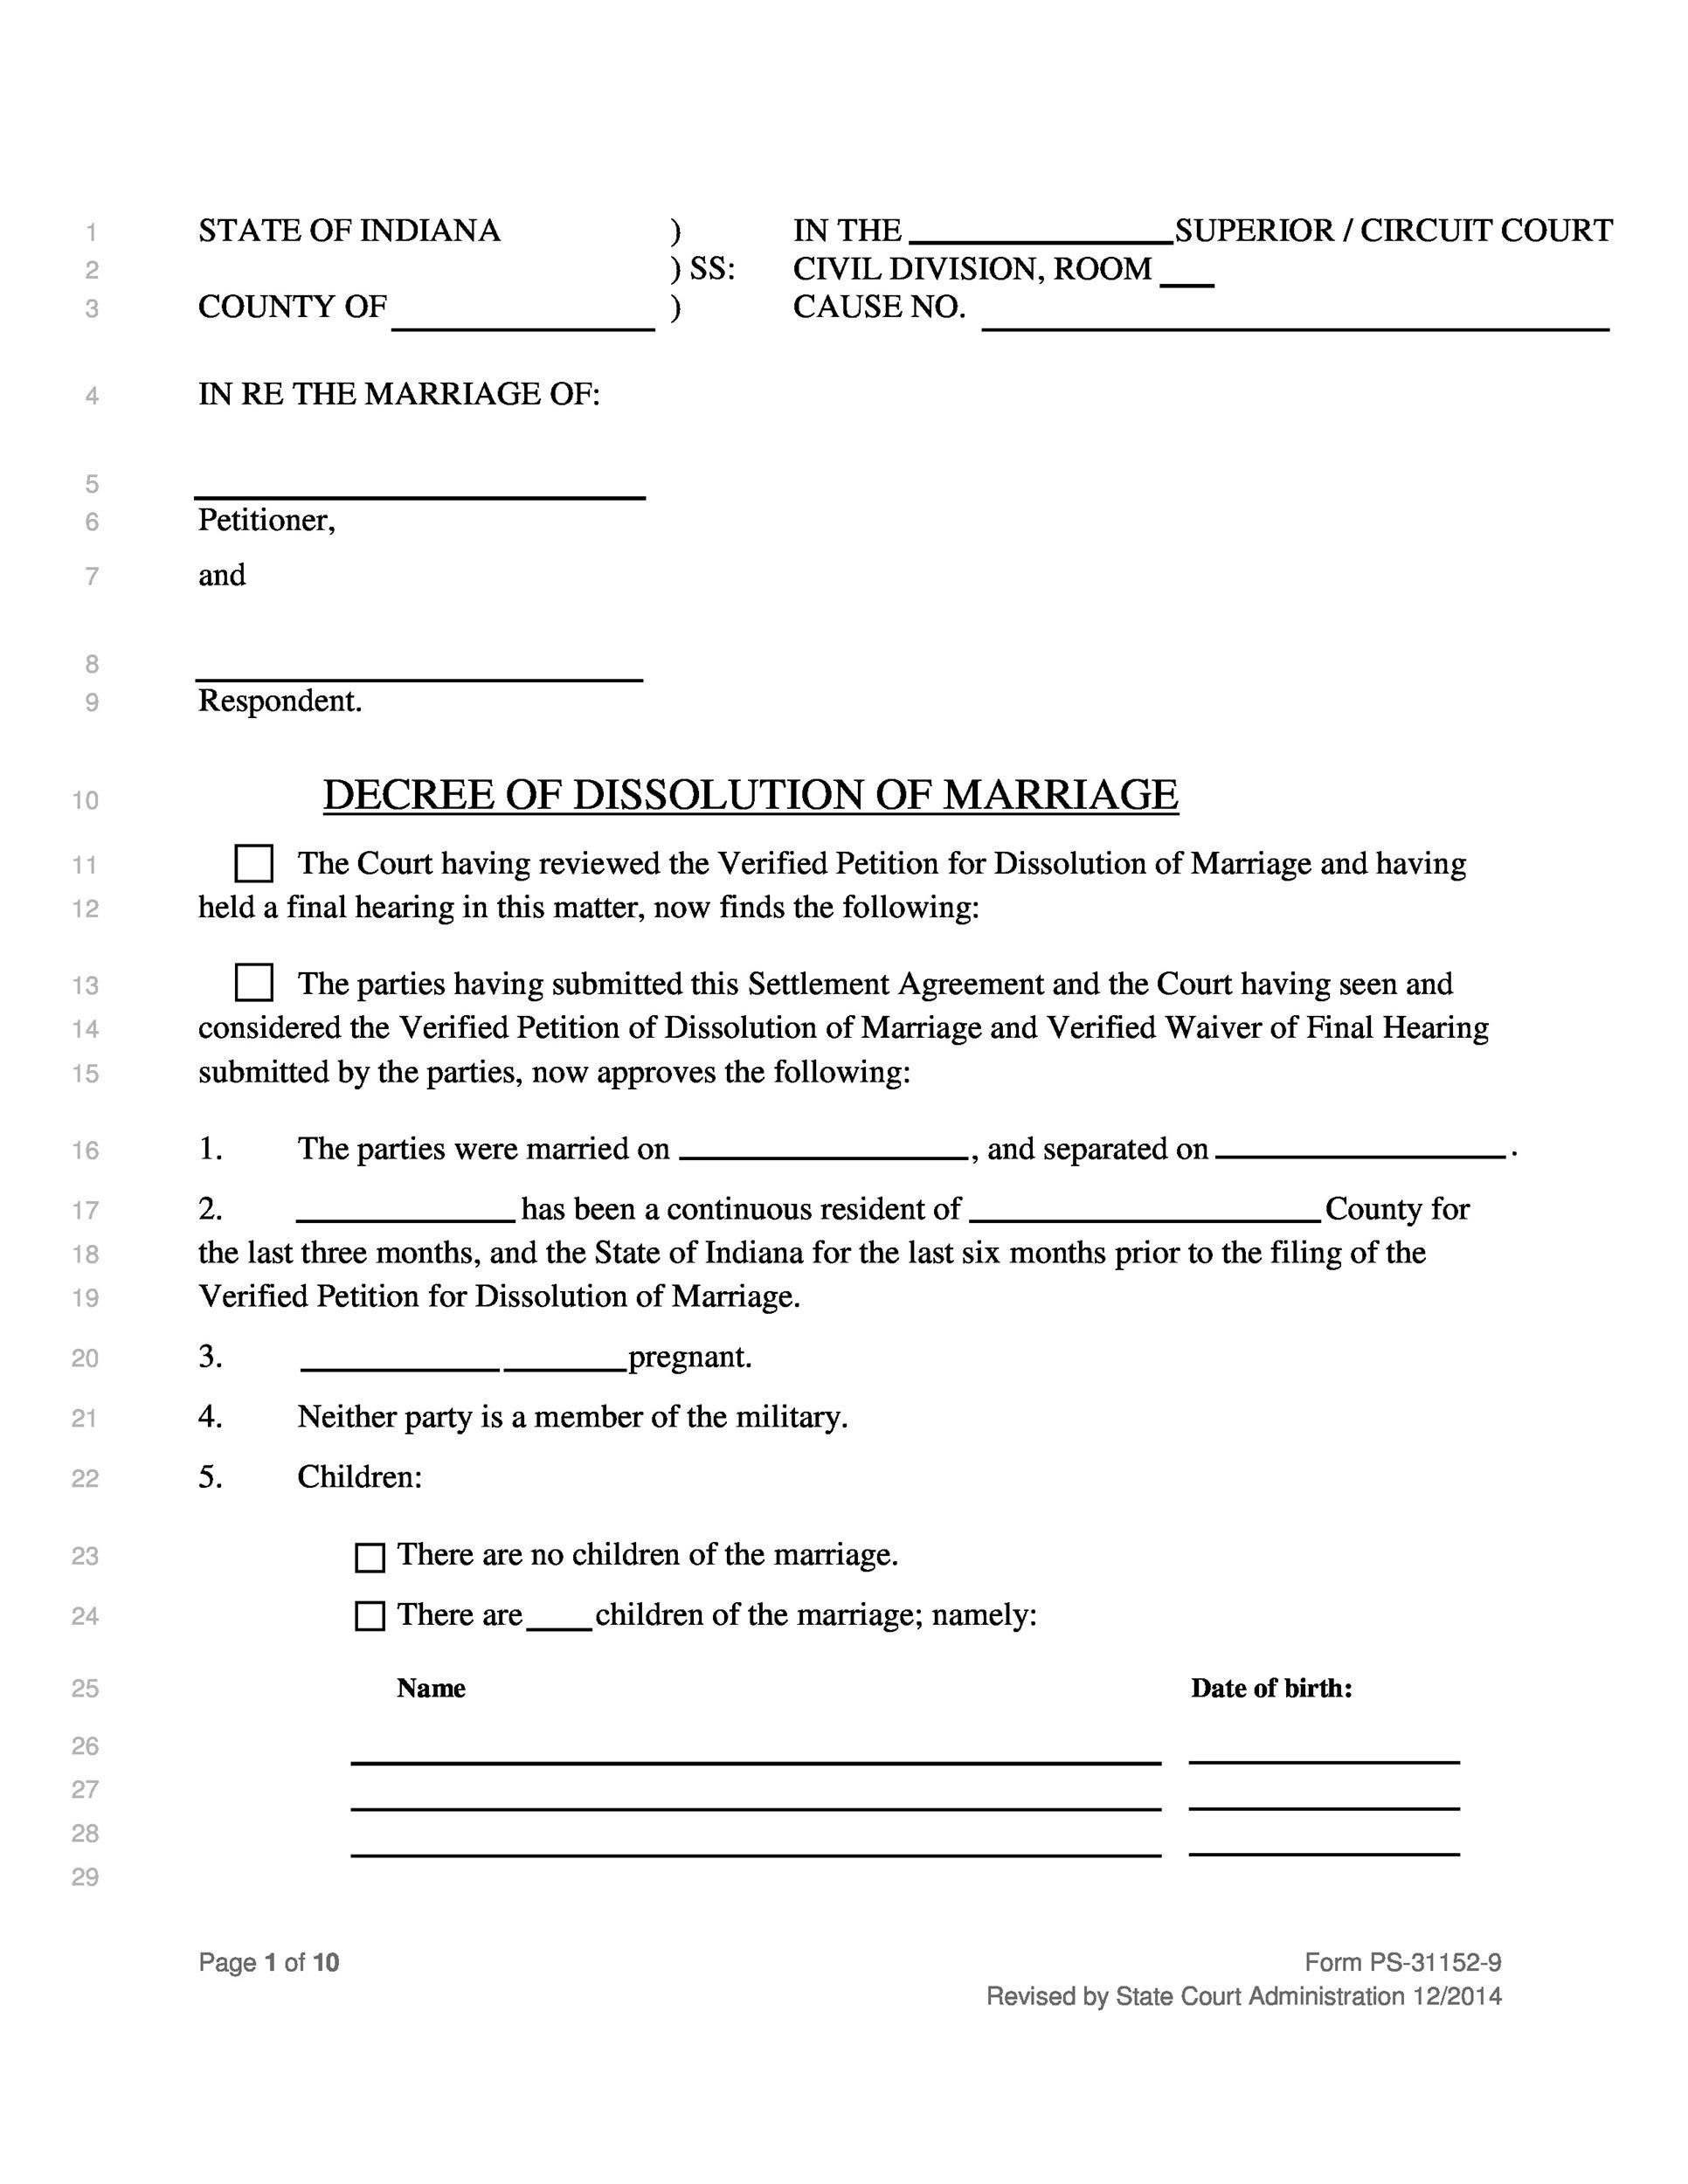 40 free divorce papers printable template lab fake divorce papers solutioingenieria Gallery